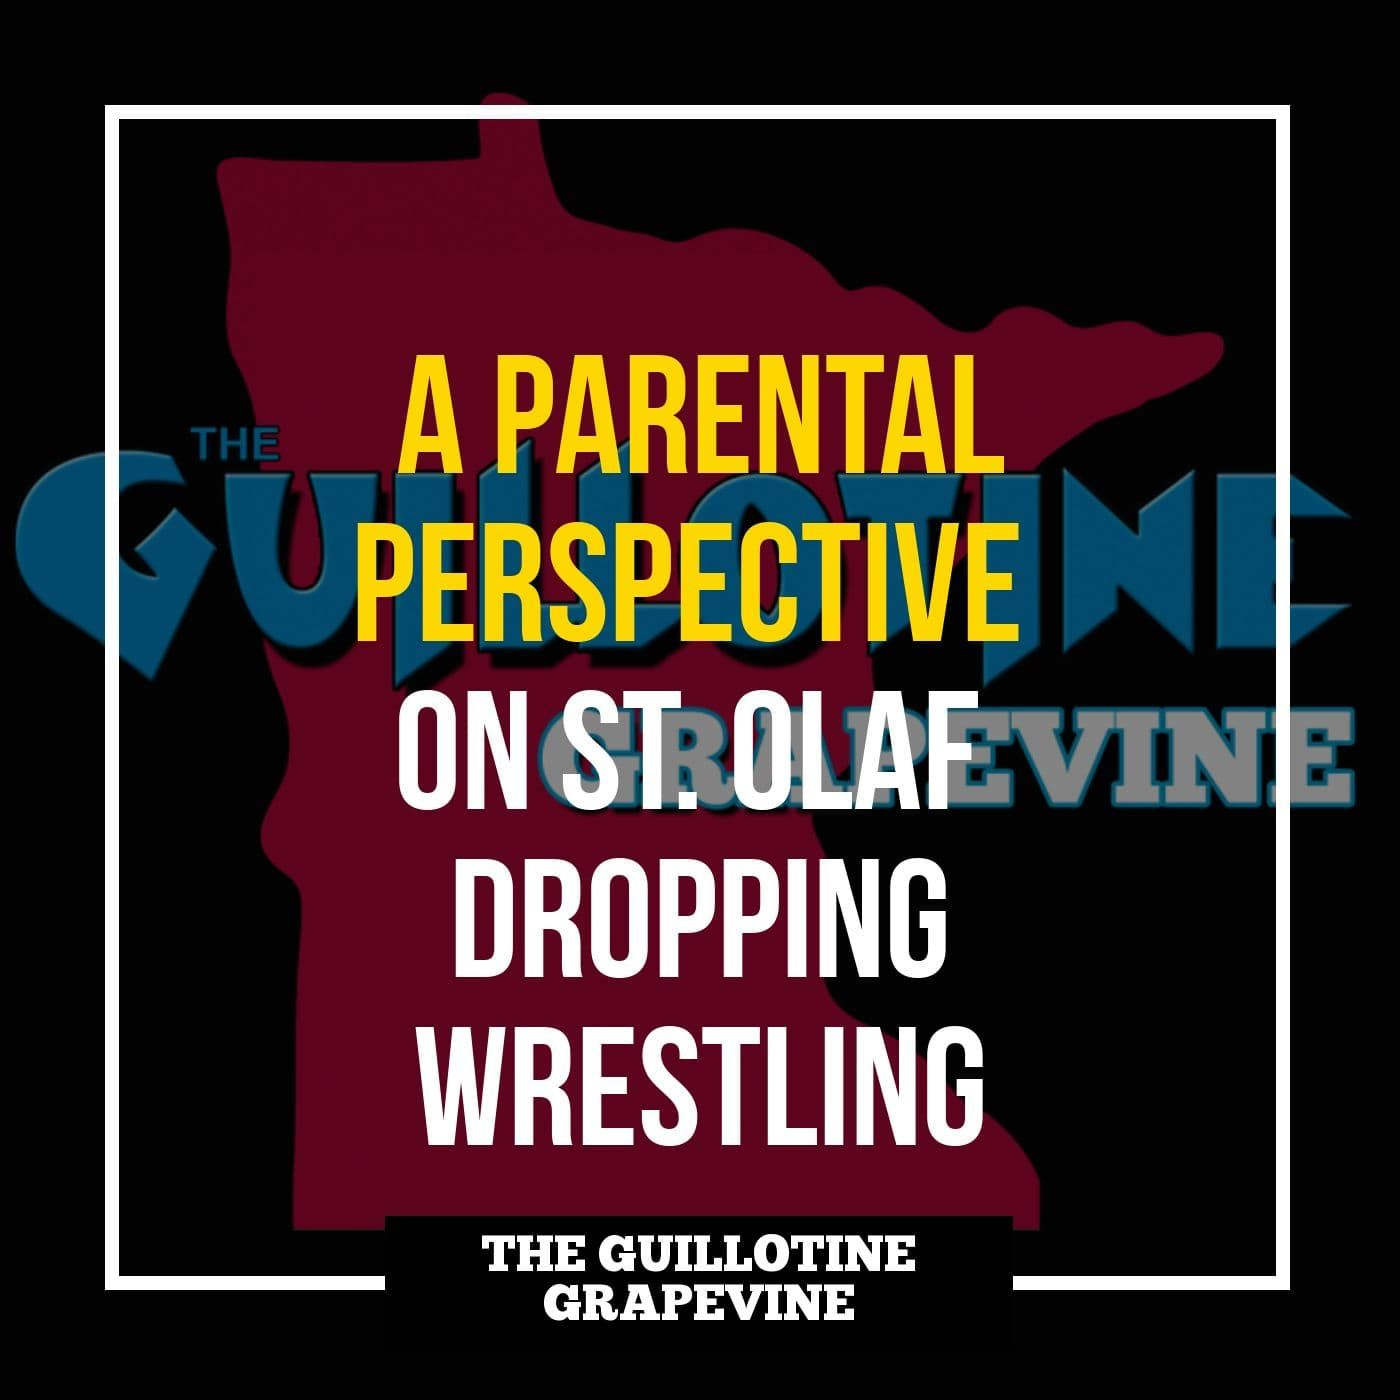 Parents perspective on St. Olaf dropping wrestling - GG61